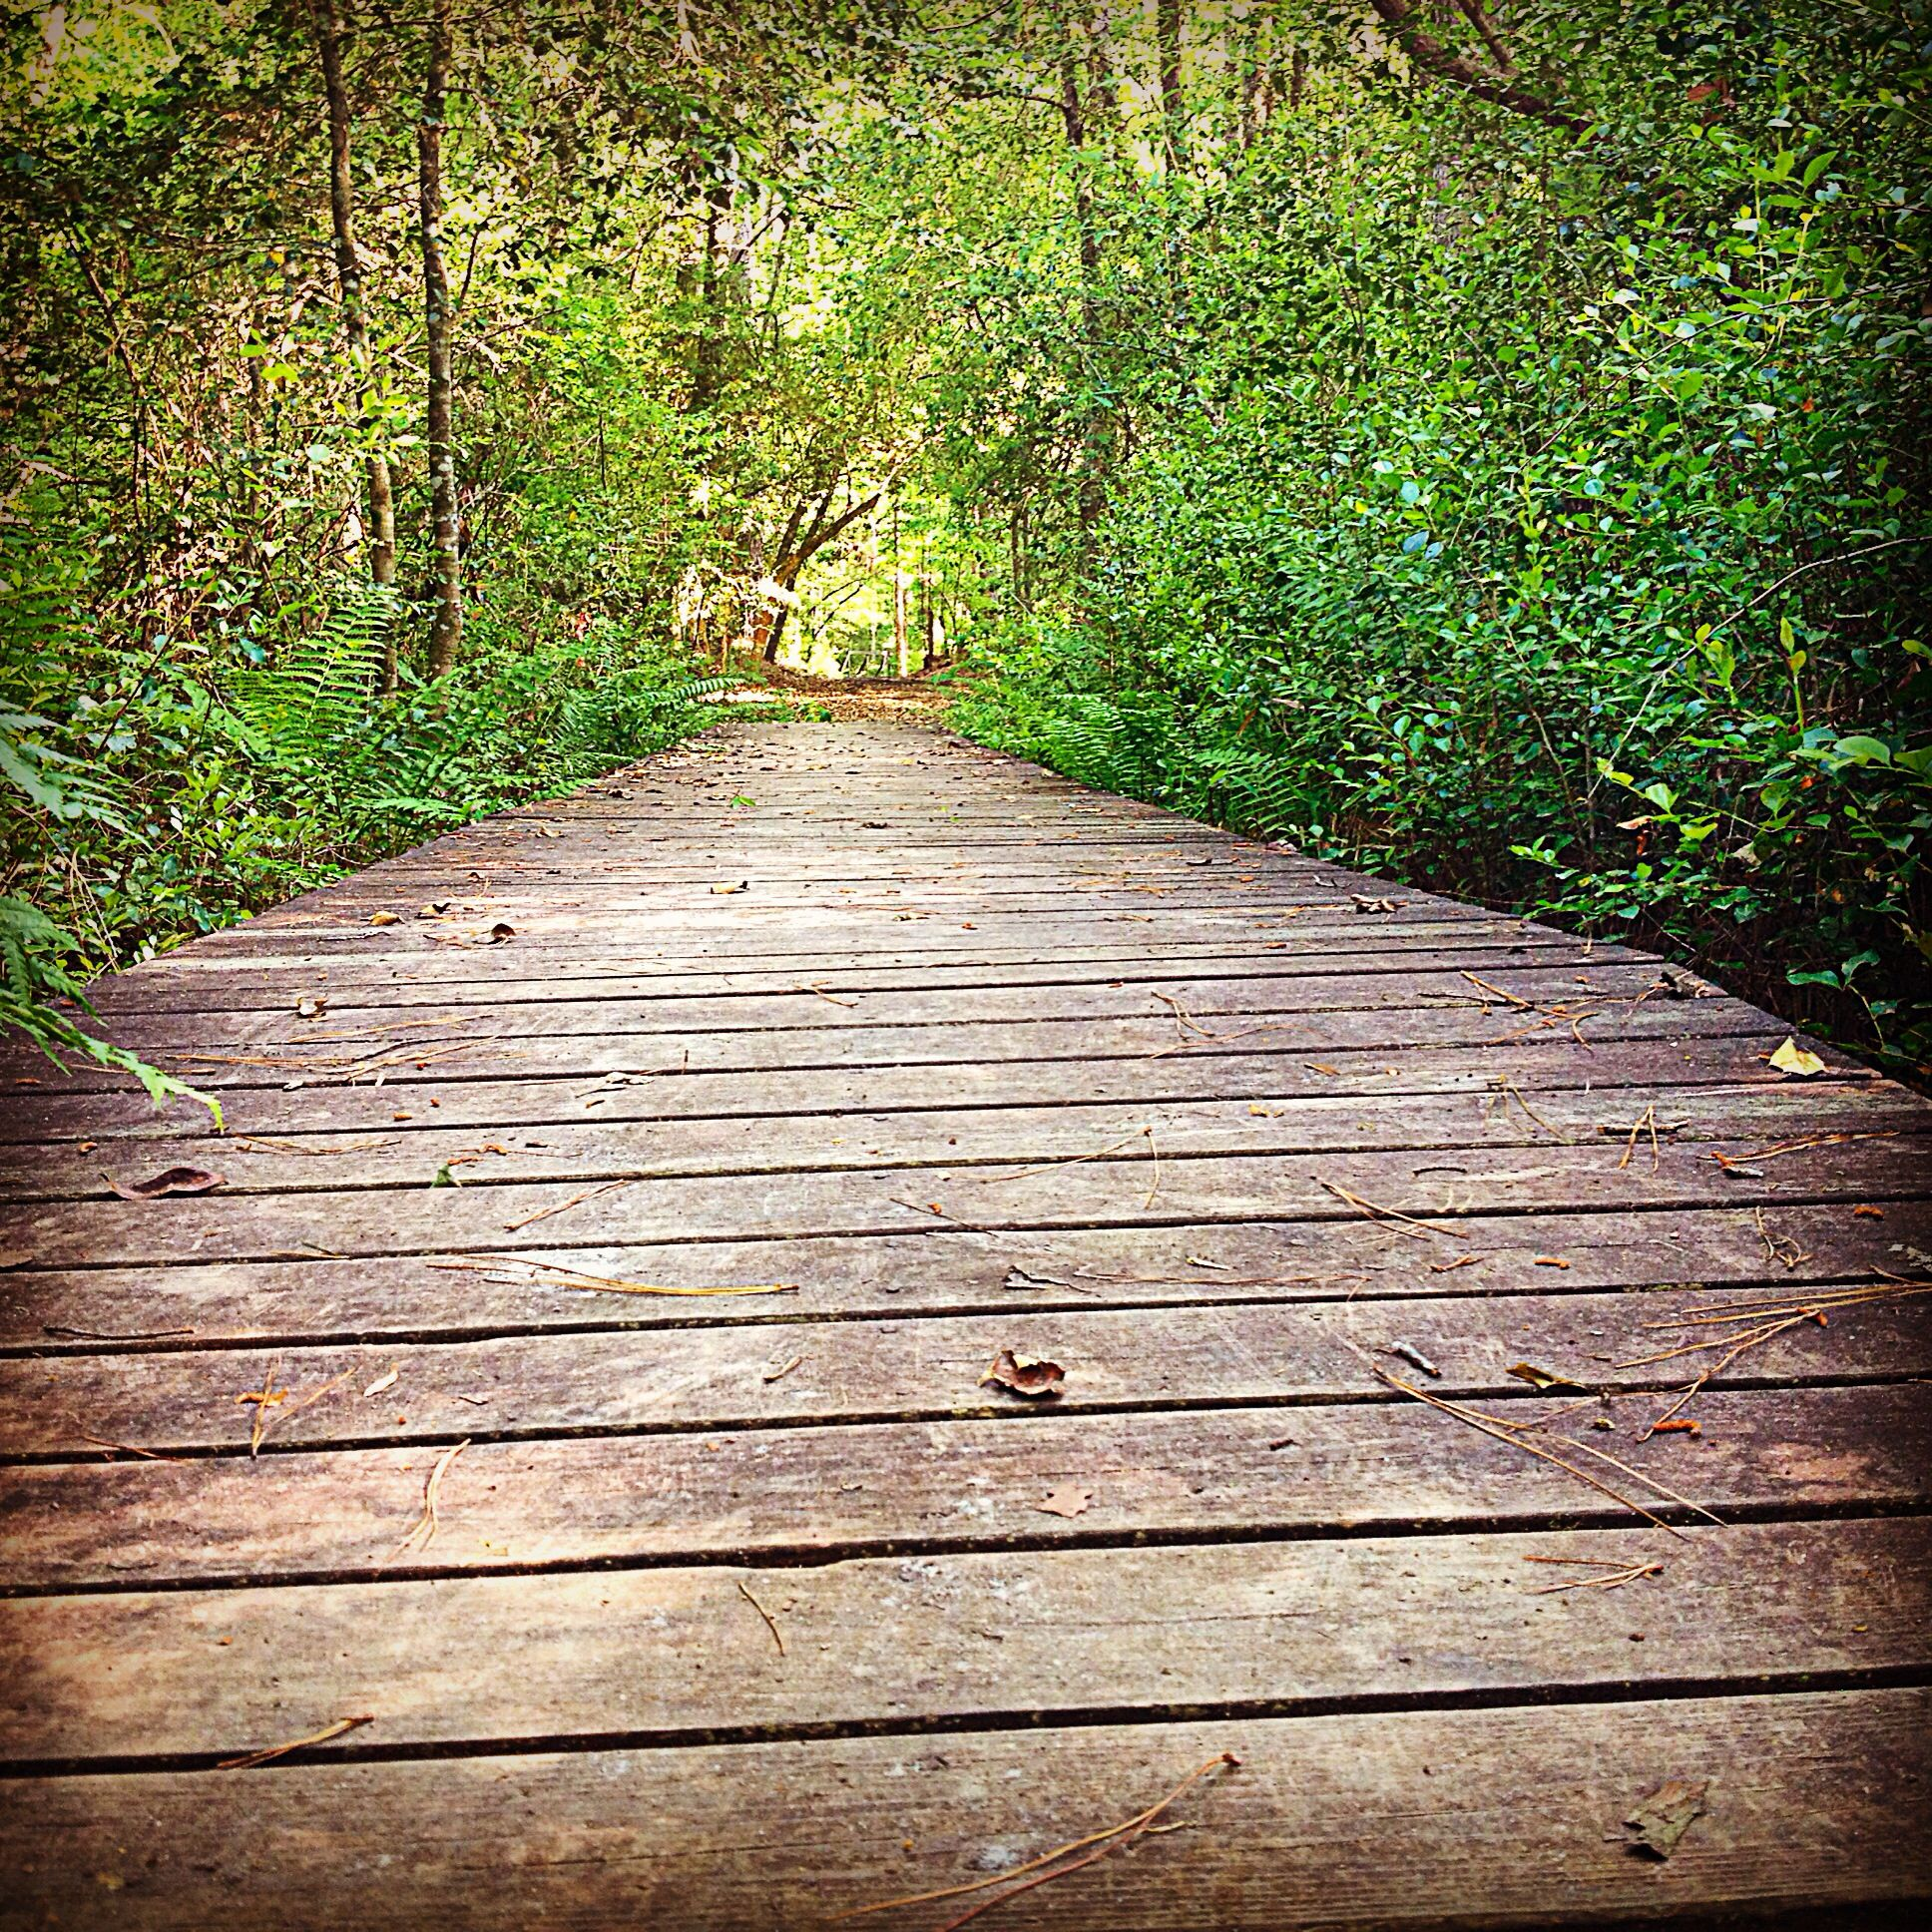 Boardwalk at Weymouth Woods